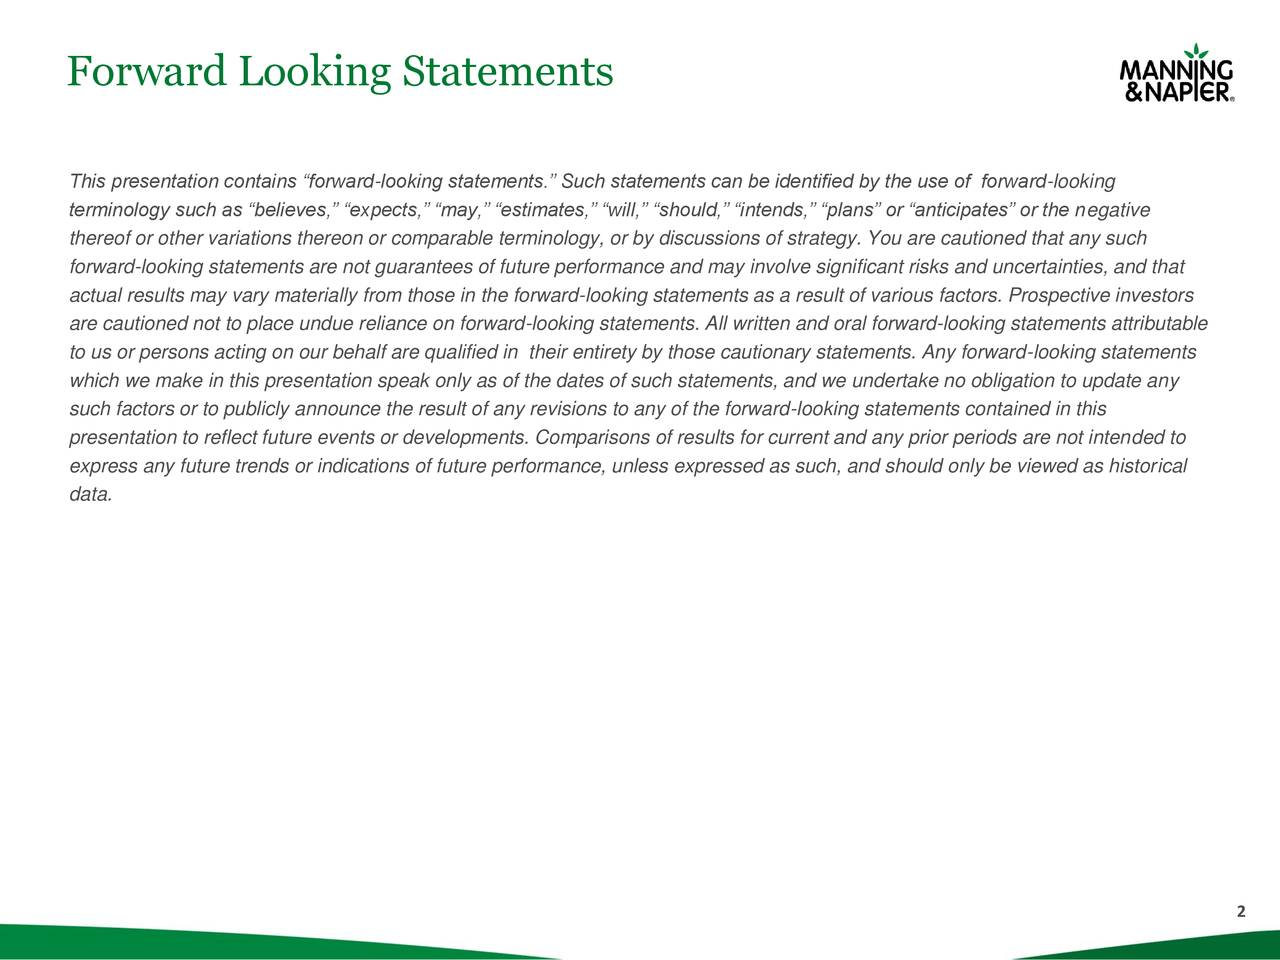 """This presentation contains """"forward-looking statements."""" Such statements can be identified by the use of forward-looking terminology such as """"believes,"""" """"expects,"""" """"may,"""" """"estimates,"""" """"will,"""" """"should,"""" """"intends,"""" """"plans"""" or """"anticipates"""" or the negative thereof or other variations thereon or comparable terminology, or by discussions of strategy. You are cautioned that any such forward-looking statements are not guarantees of future performance and may involve significant risks and uncertainties, and that actual results may vary materially from those in the forward-looking statements as a result of various factors. Prospective investors are cautioned not to place undue reliance on forward-looking statements. All written and oral forward-looking statements attributable to us or persons acting on our behalf are qualified in their entirety by those cautionary statements. Any forward-looking statements which we make in this presentation speak only as of the dates of such statements, and we undertake no obligation to update any such factors or to publicly announce the result of any revisions to any of the forward-looking statements contained in this presentation to reflect future events or developments. Comparisons of results for current and any prior periods are not intended to express any future trends or indications of future performance, unless expressed as such, and should only be viewed as historical data. 2"""